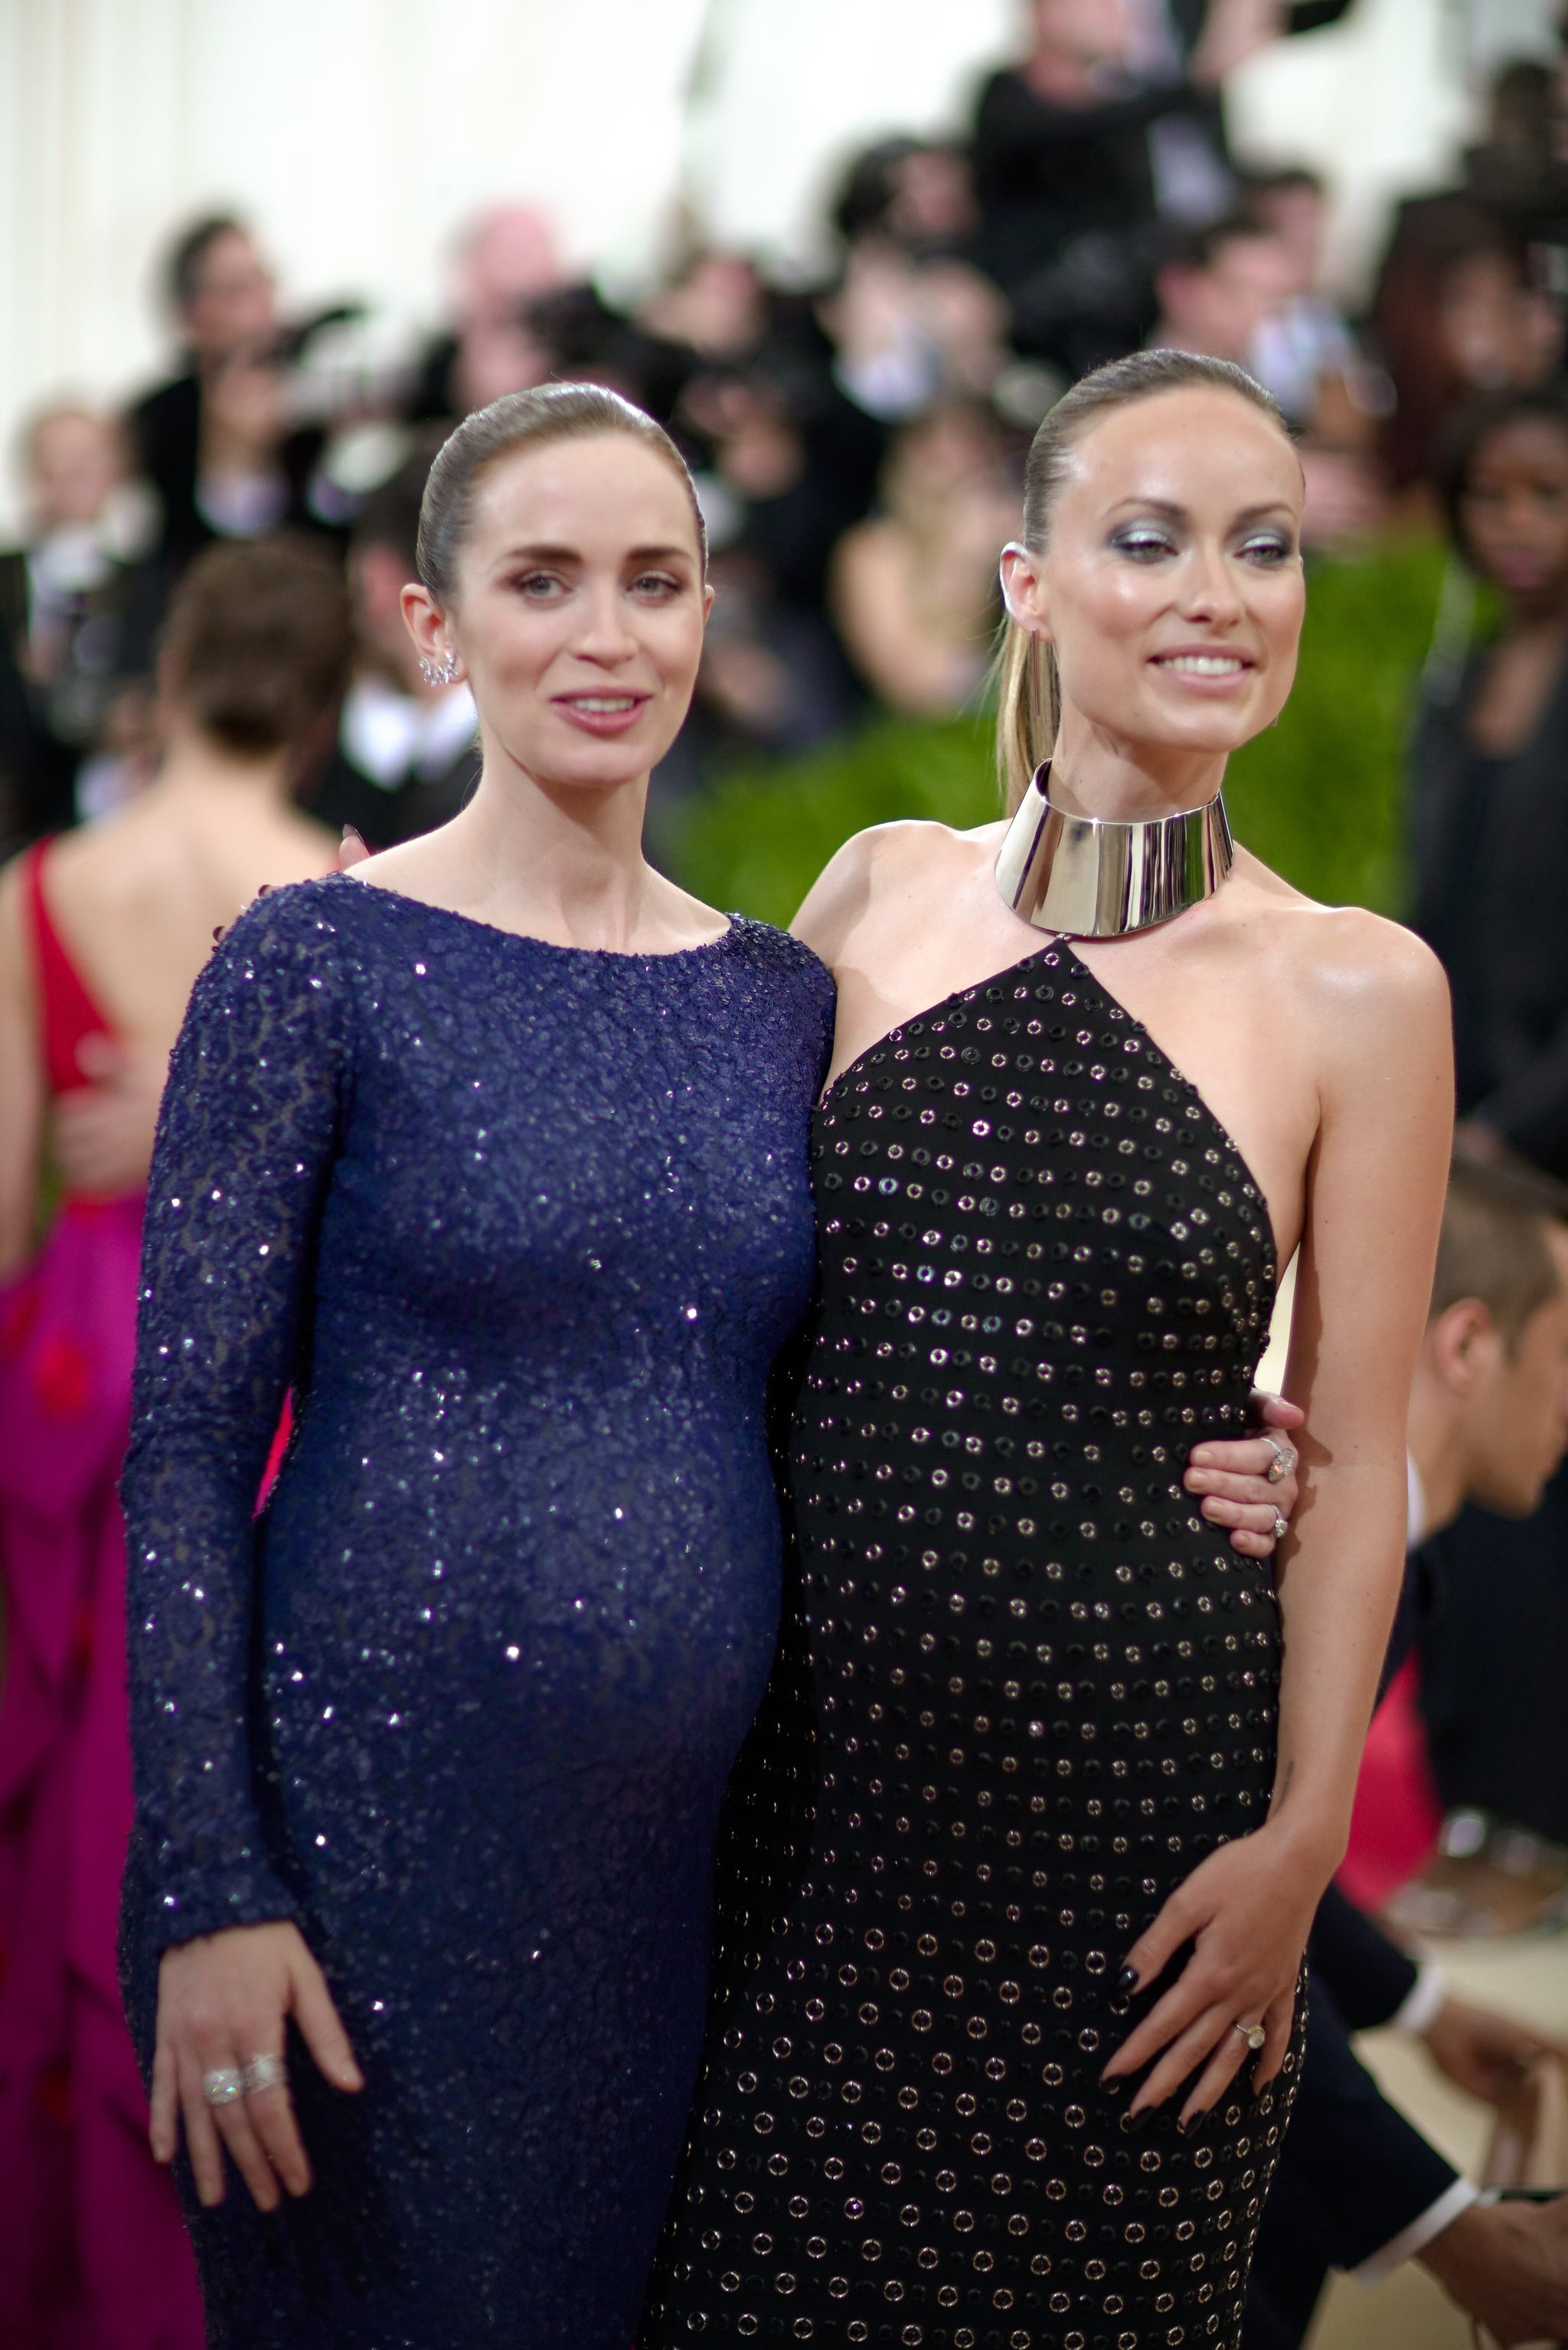 Pictured olivia wilde and emily blunt the 69 met gala for Klb gala preisliste 2016